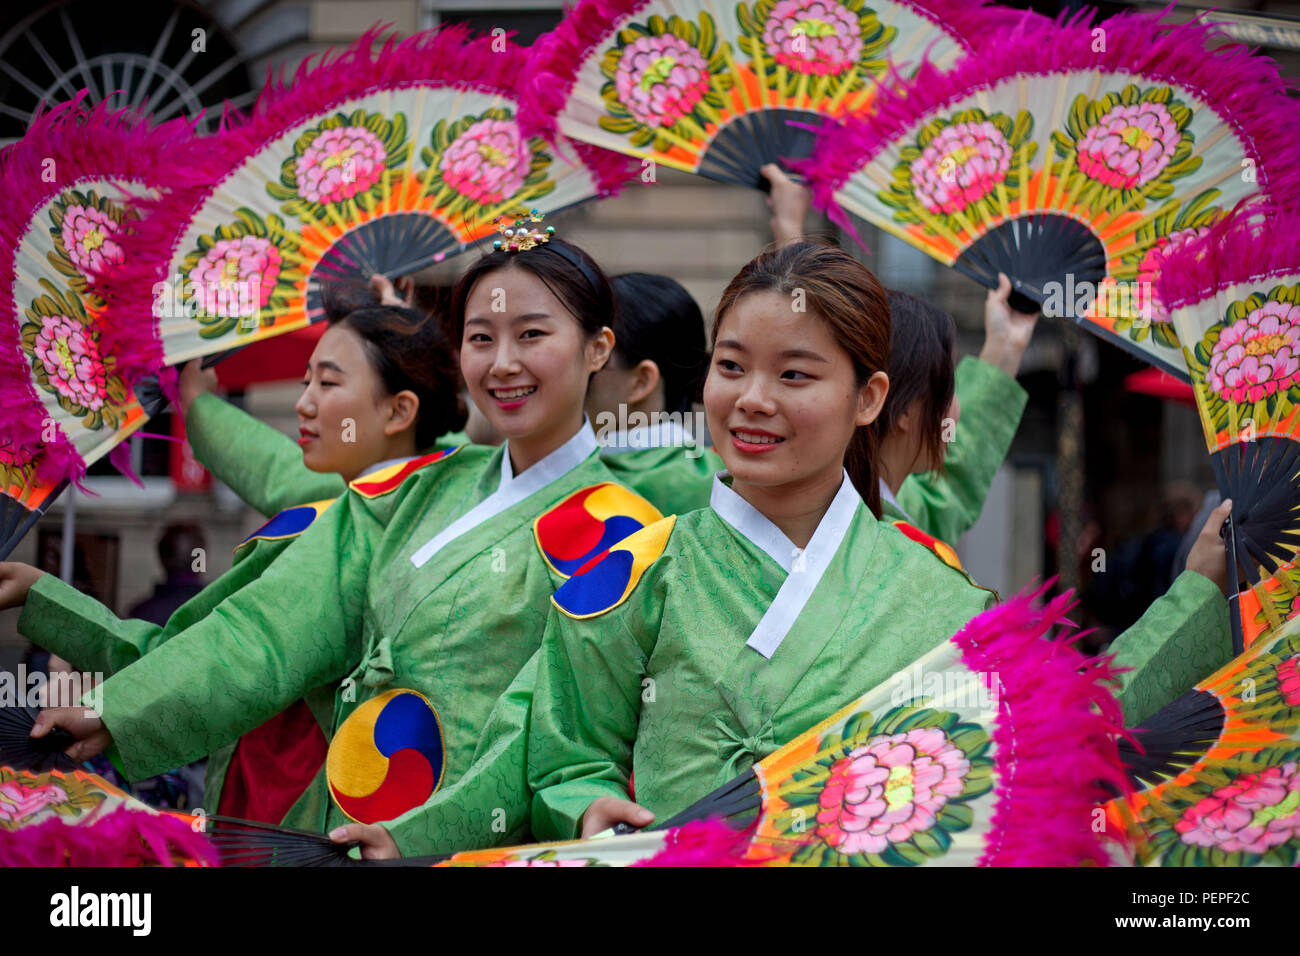 Edinburgh, Scotland, UK 17 August 2018. Edinburgh Fringe Royal Mile adding colour to the High Street Members of Soon Chun Hyang Uni English Drama Club promote their joyful and never too serious The Merry Wives of Seoul as a new adaptation of The Merry Wives of Windsor, Shakespeare's comedy of love and marriage. - Stock Image